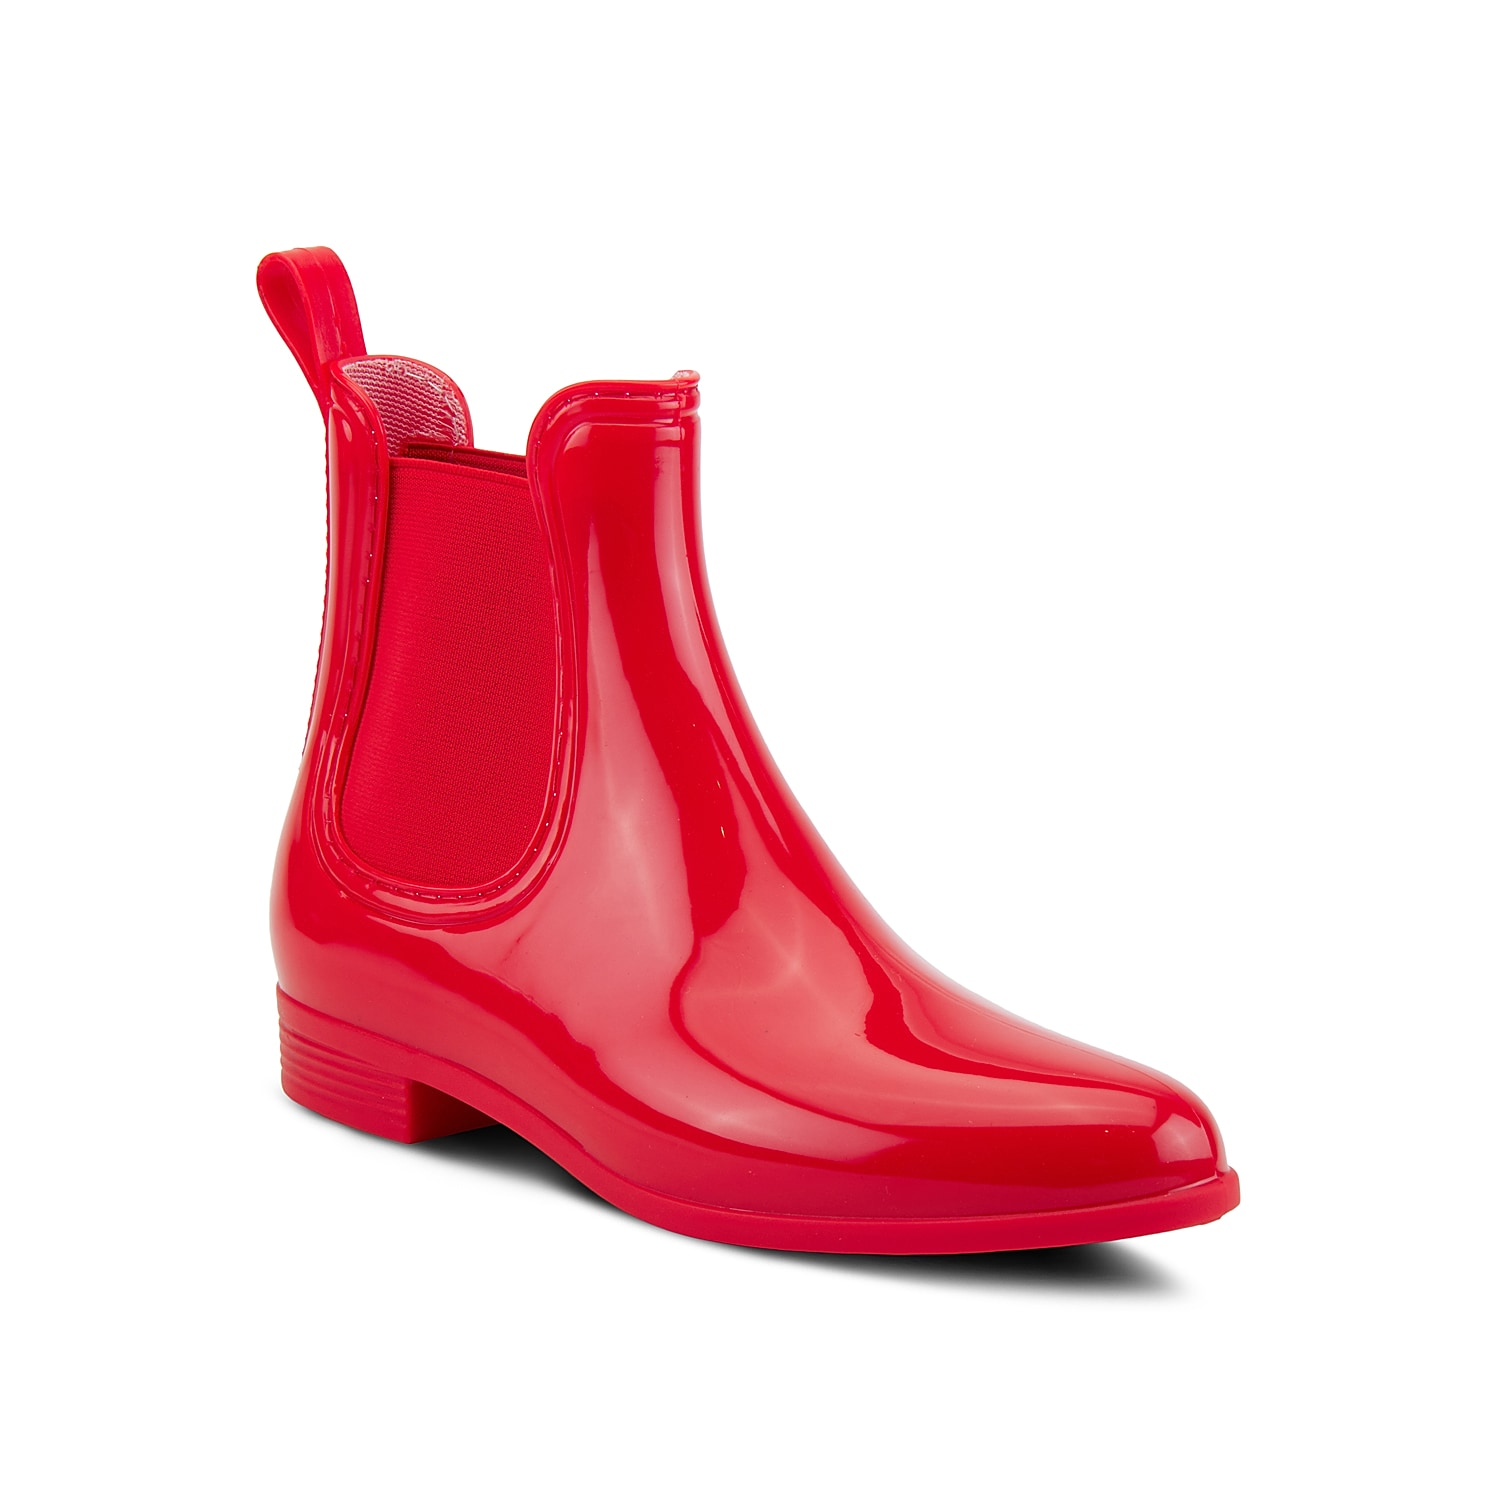 Add some shine to rainy days with the Raindrop Chelsea rain boot from Spring Step. This classic style boot showcases a waterproof construction to keep the water out and is equipped with twin goring panels for a precise fit.